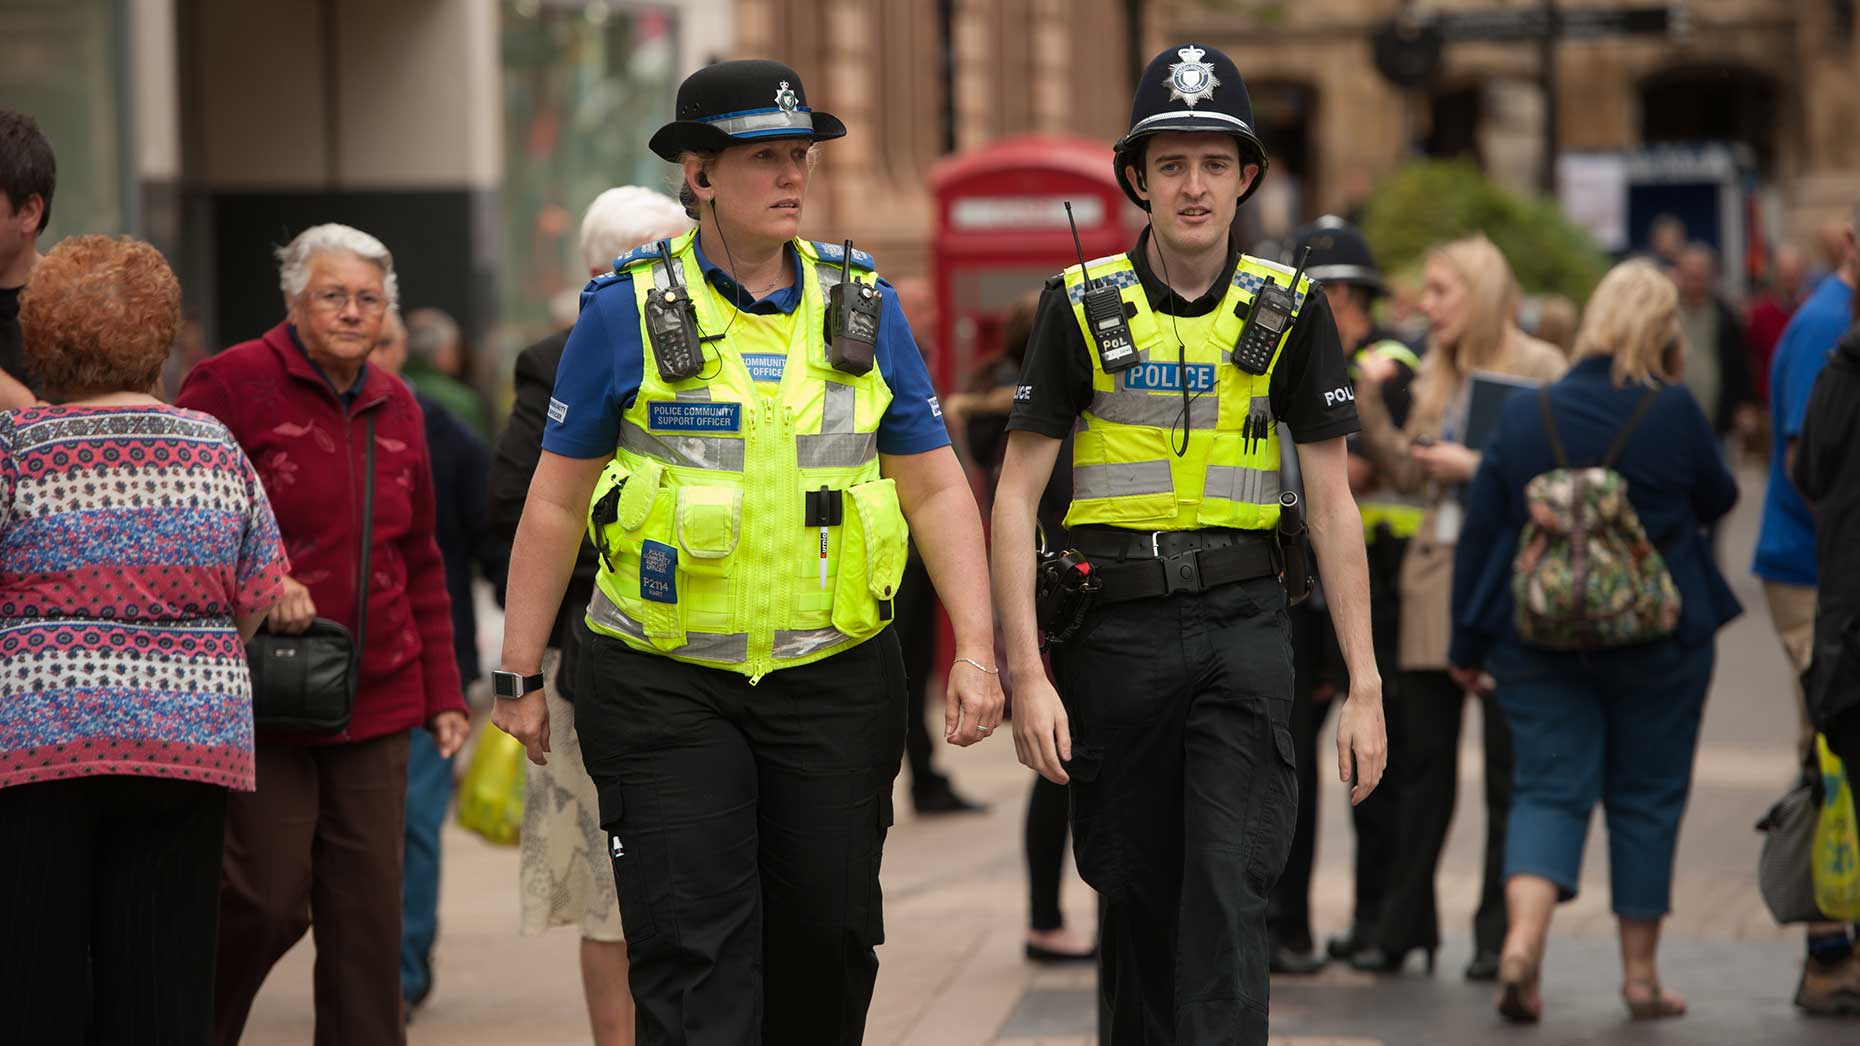 The cuts to neighbourhood policing in Cornwall and Devon